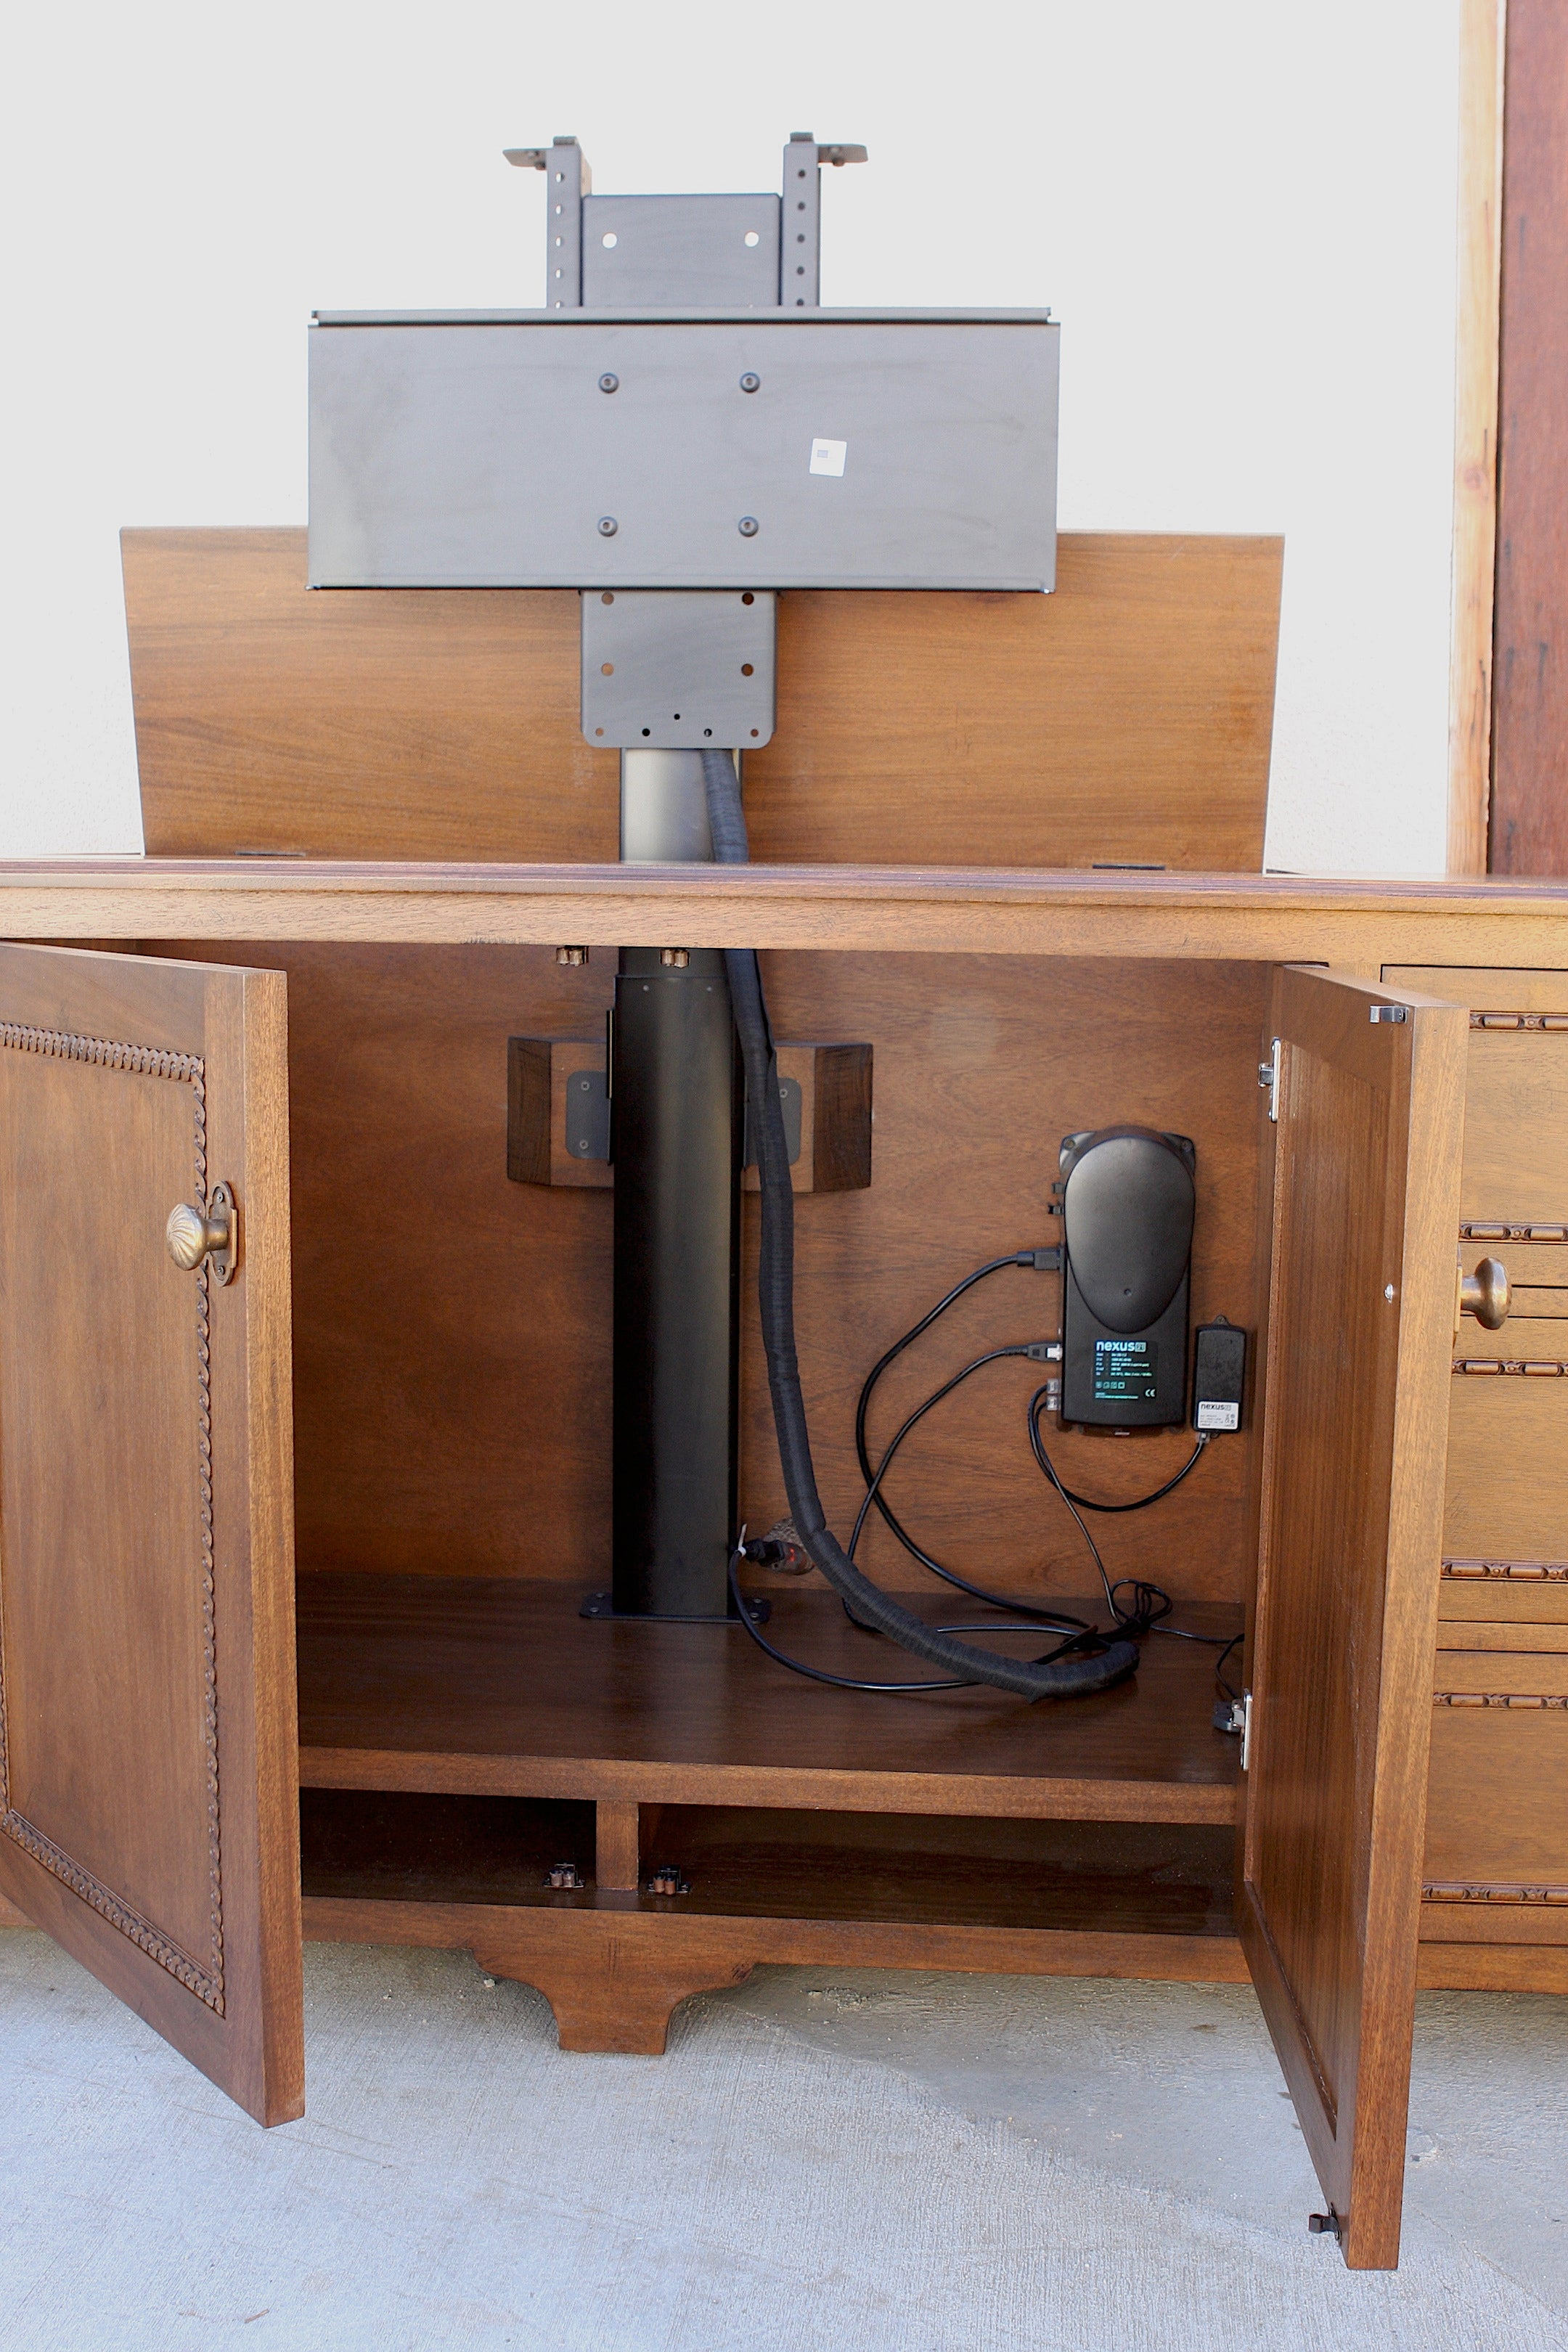 Cabinets With Motorized Tv Lifts Mortise Amp Tenon